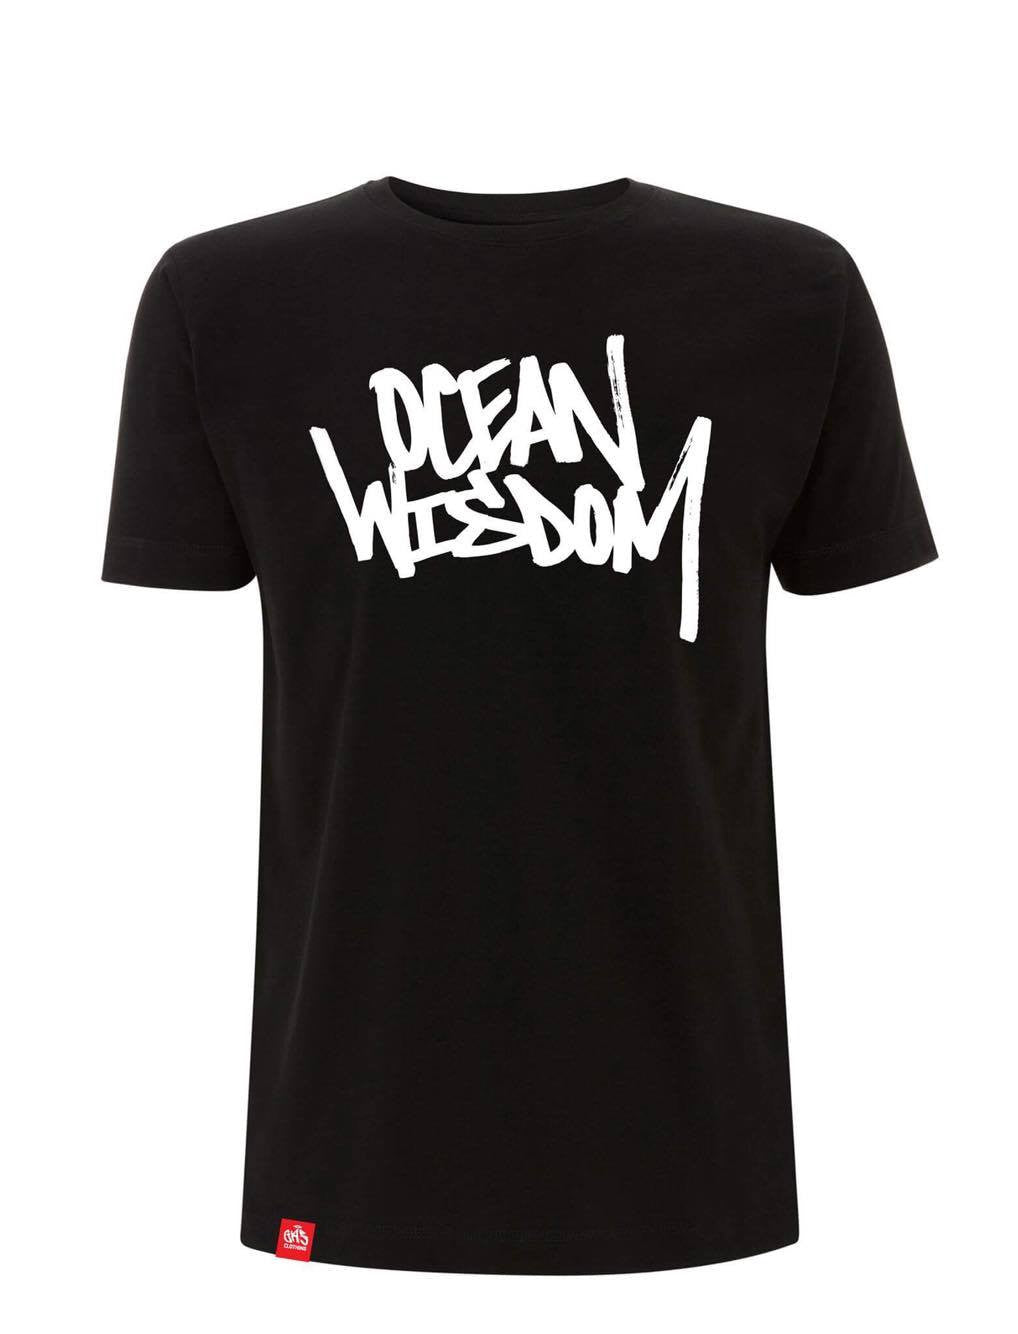 Ocean Wisdom - Official Logo Tee (Black)